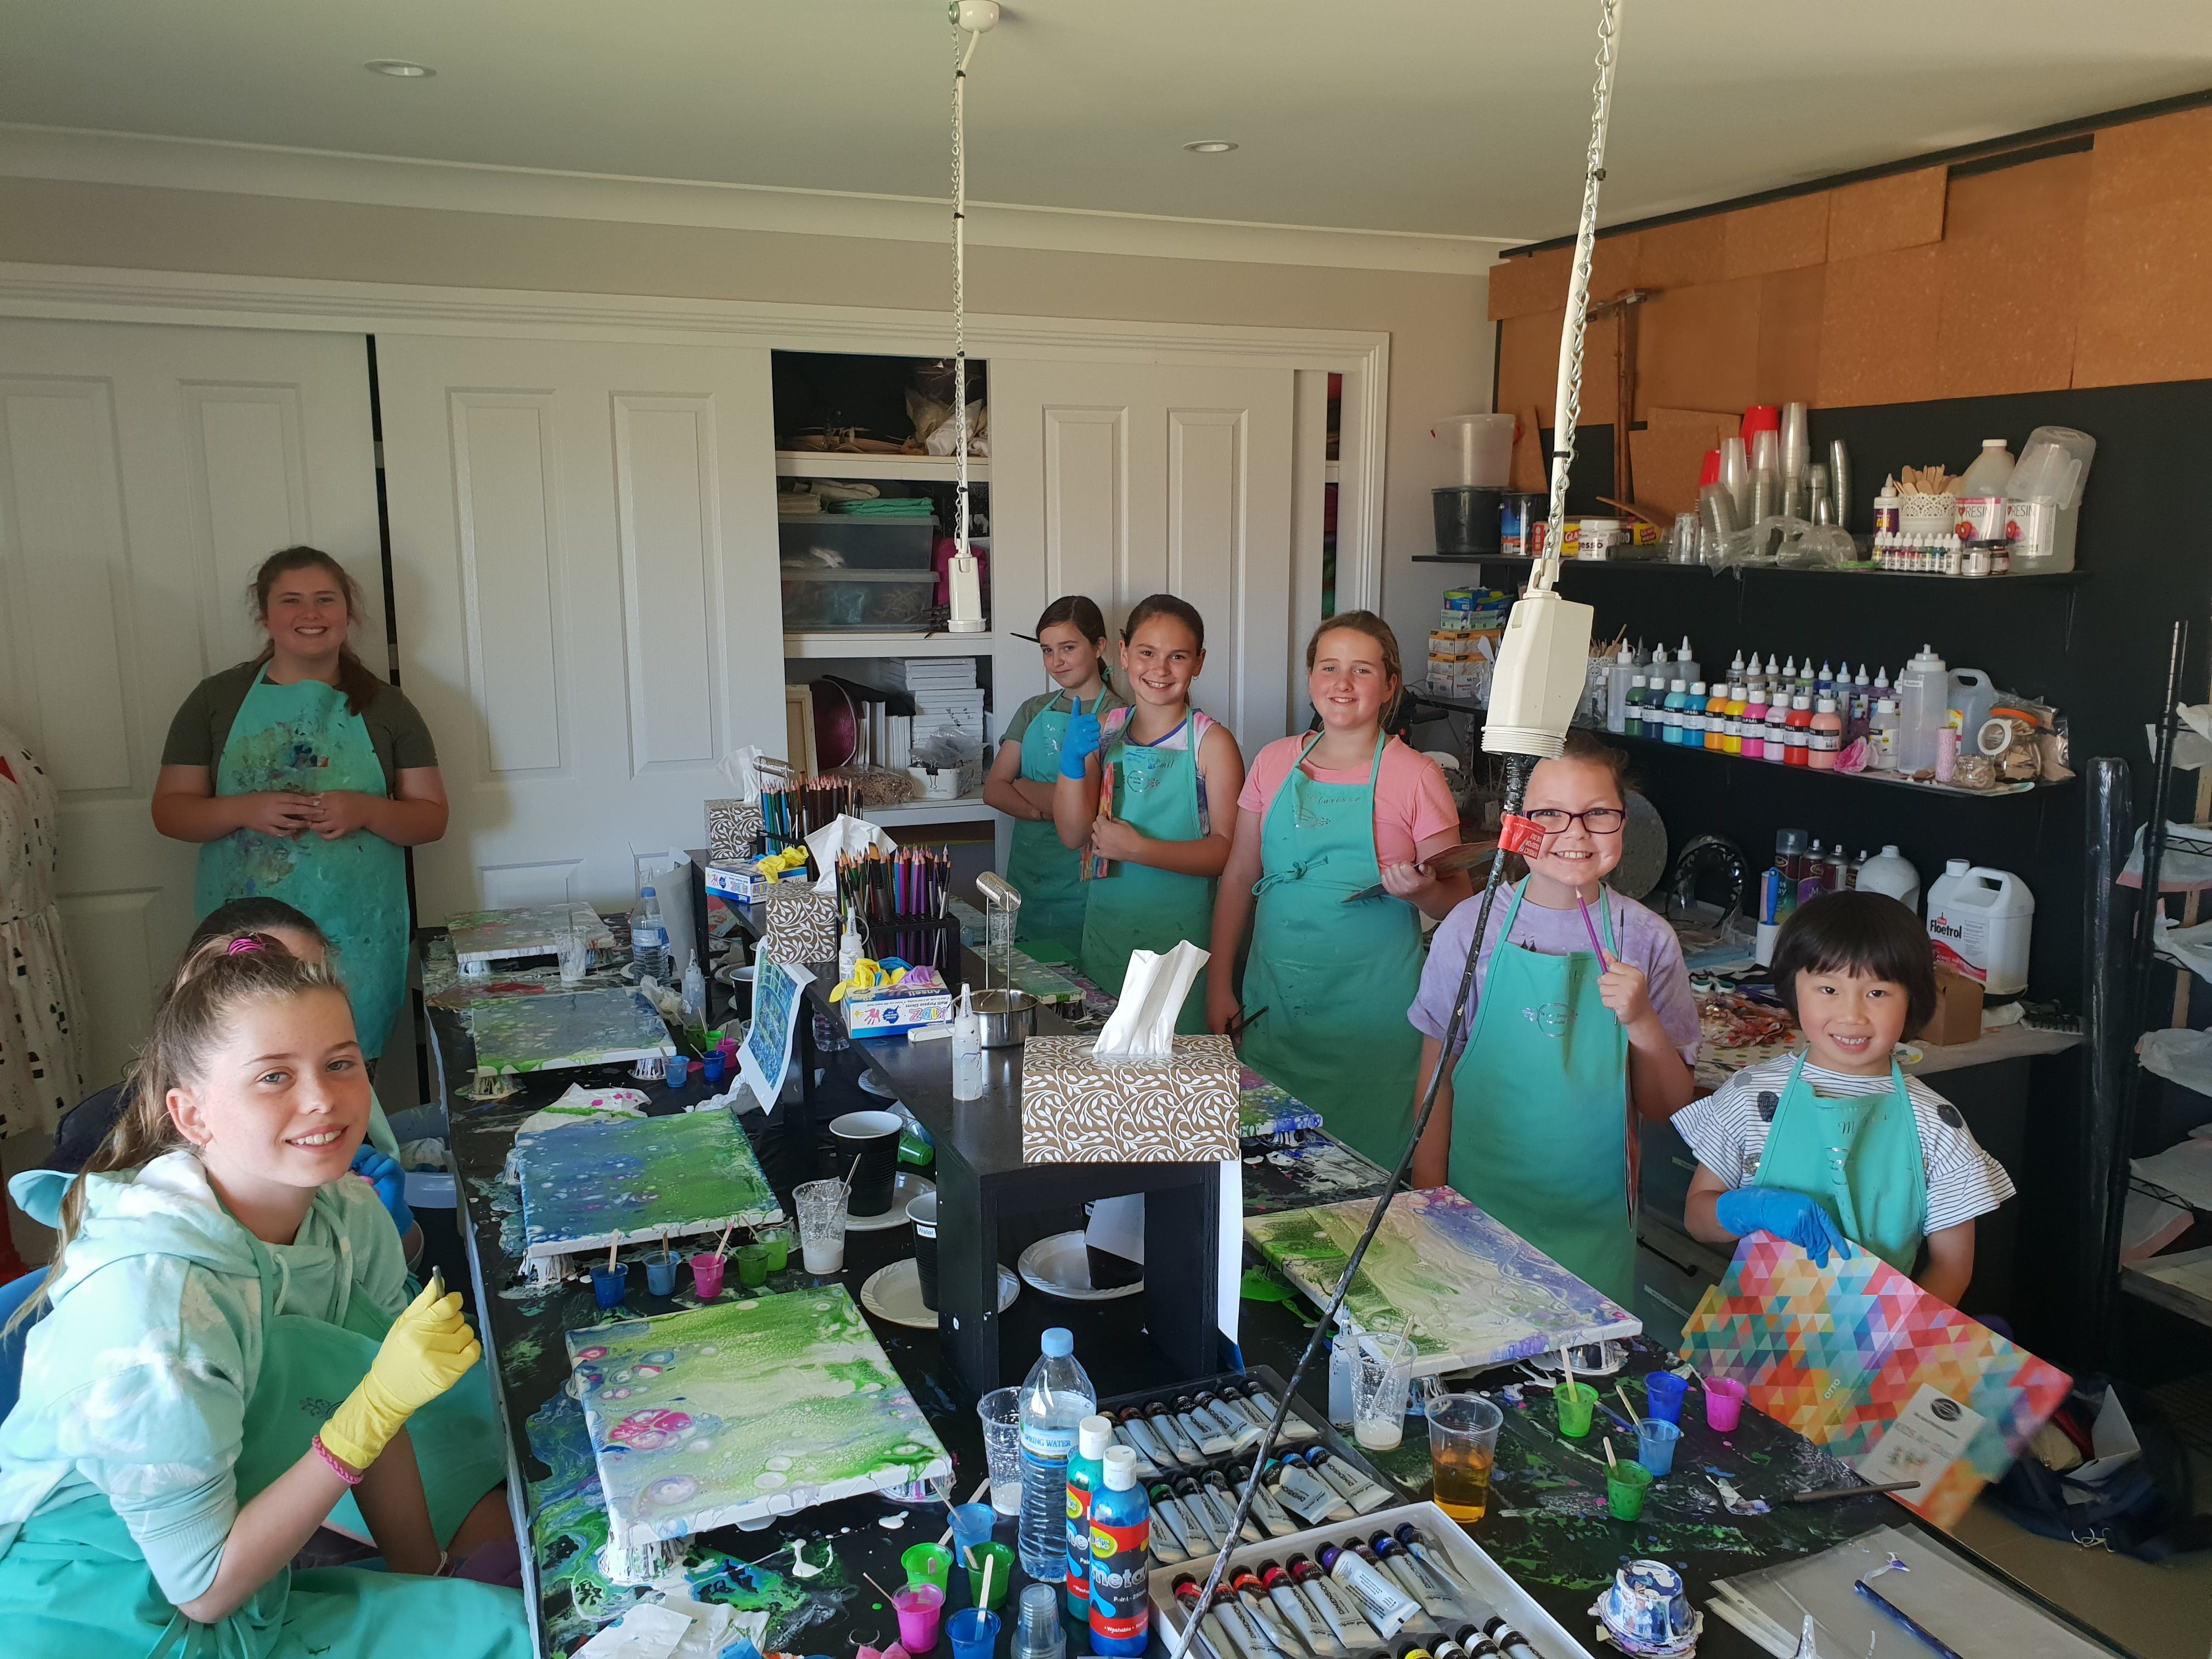 School holidays - Kids art class - Painting - Mount Gambier Accommodation